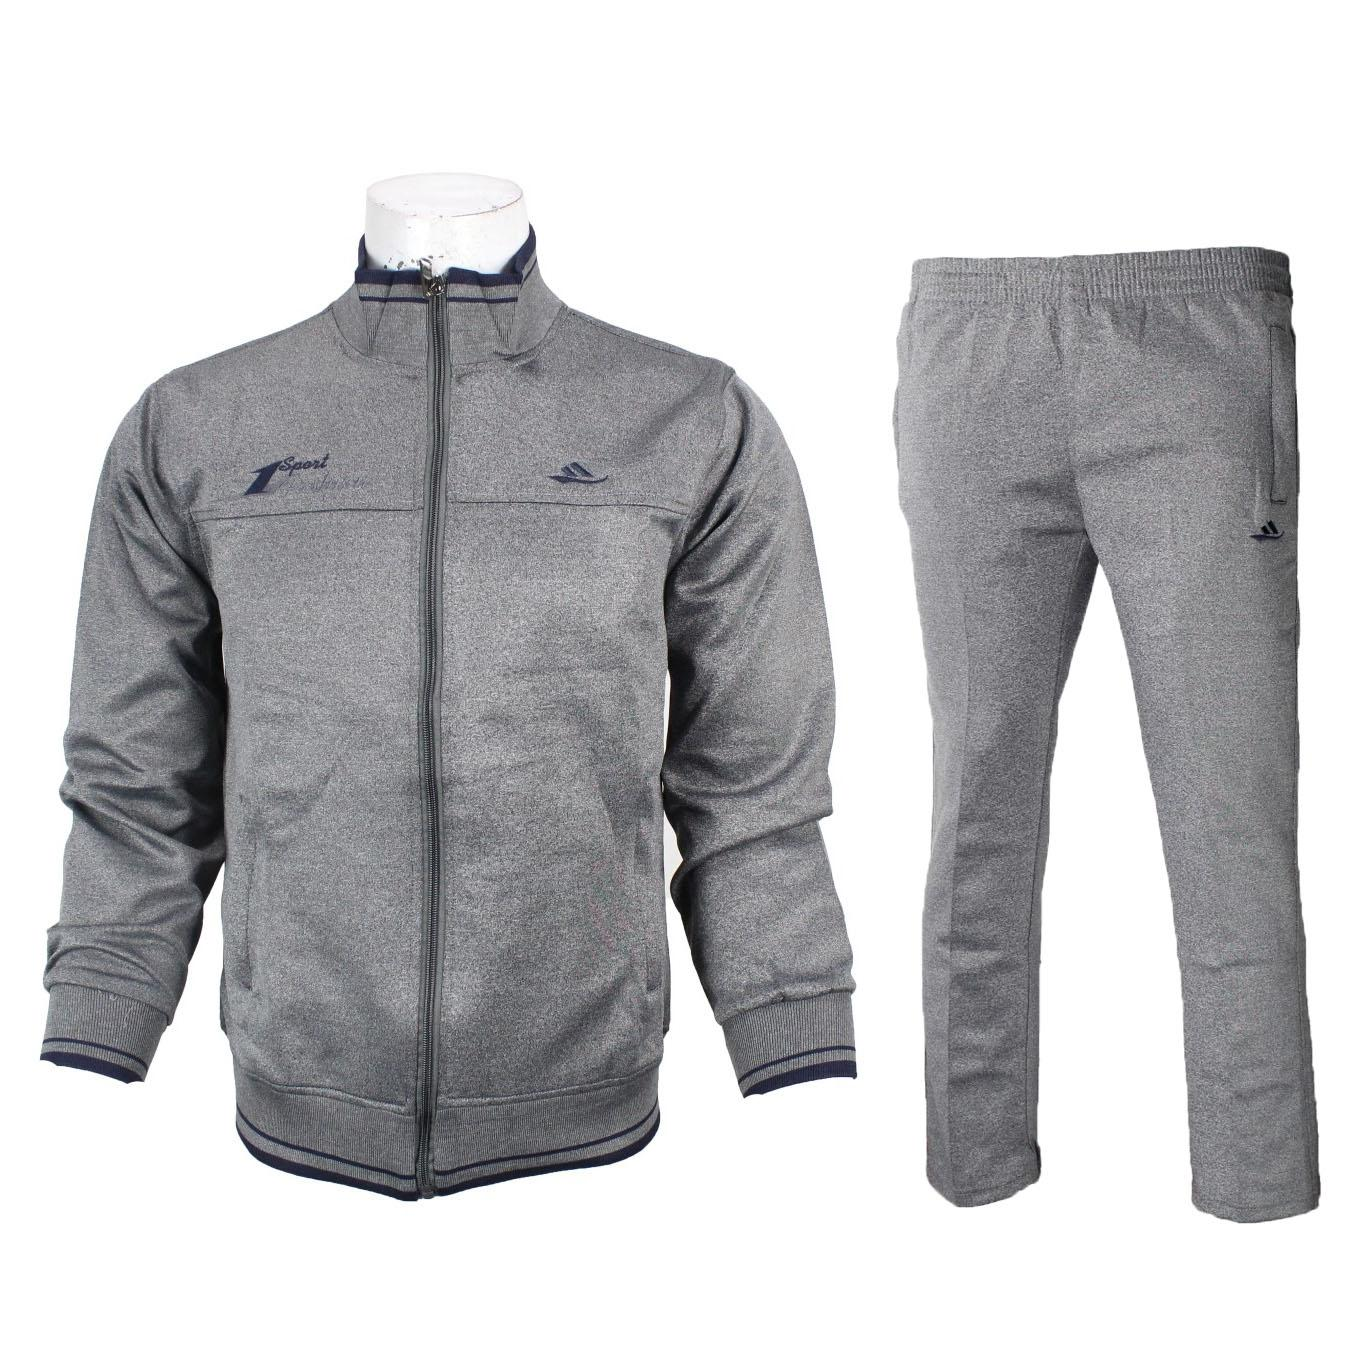 Grey Sports Track Set For Men